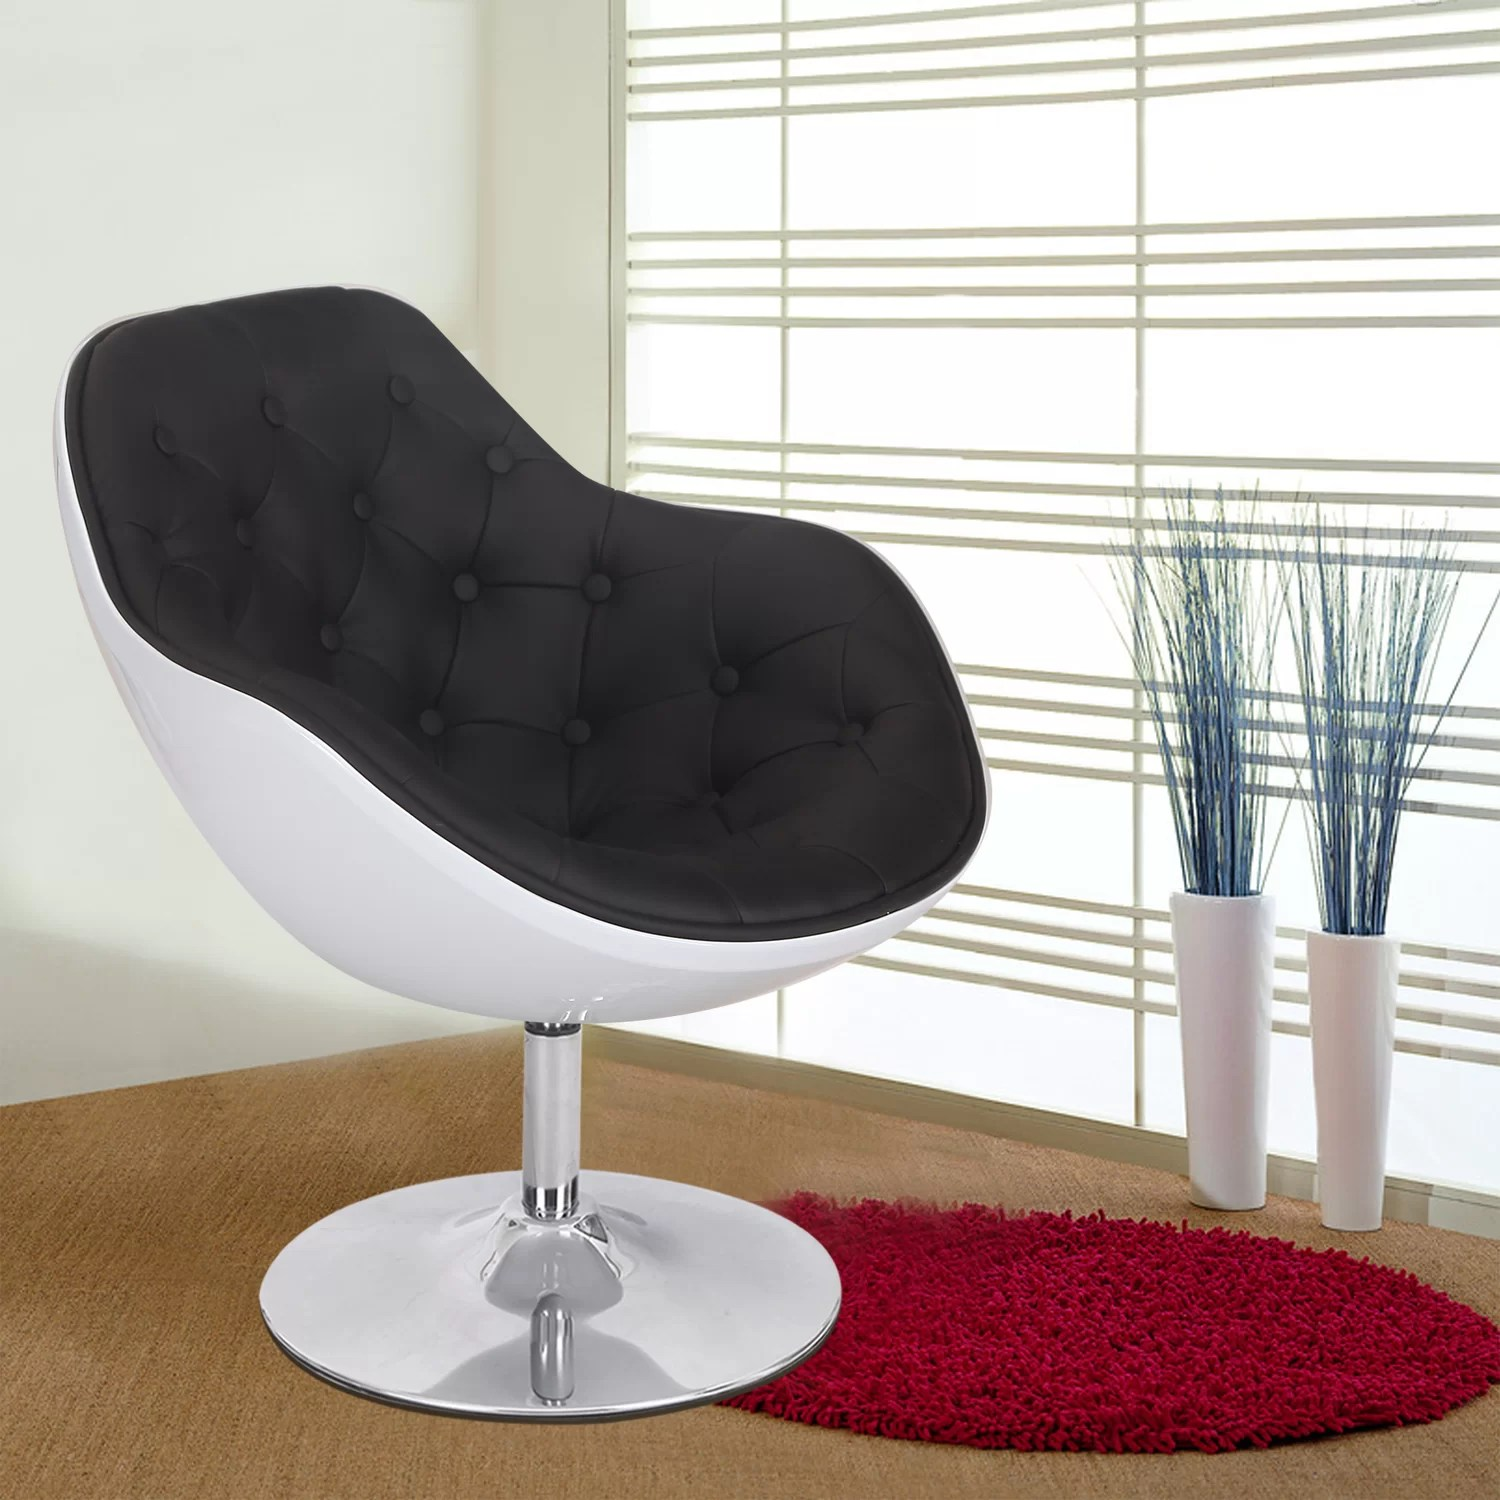 Egg Shaped Chairs Adecotrading Egg Shaped Leisure Arm Chair Wayfair